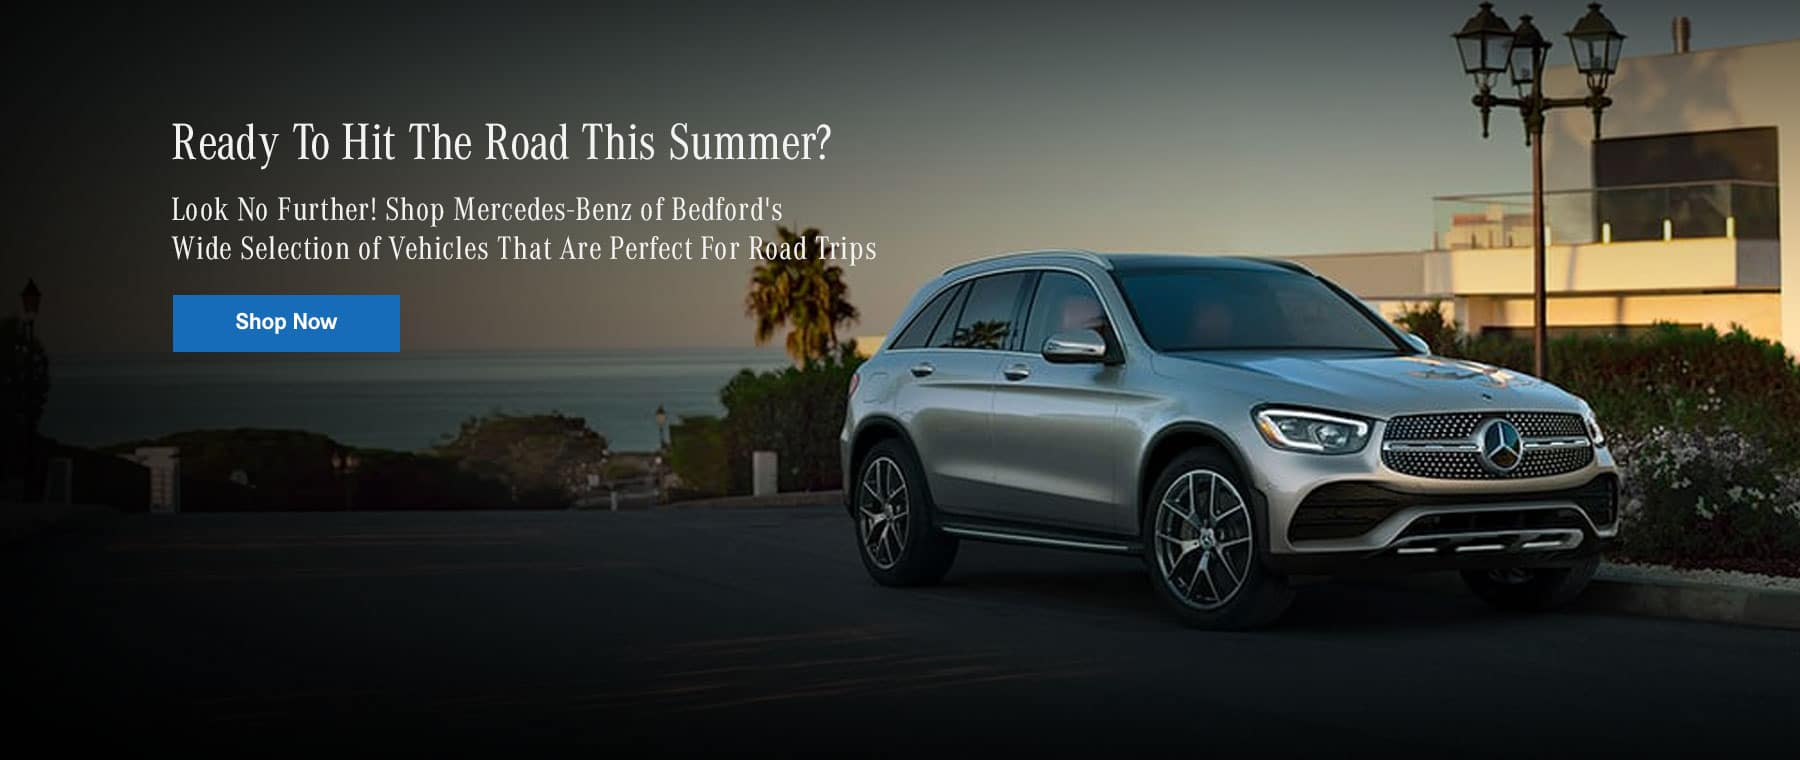 Ready to hit the road this summer? Look no further - Mercedes-Benz of Bedford has a wide selection of inventory